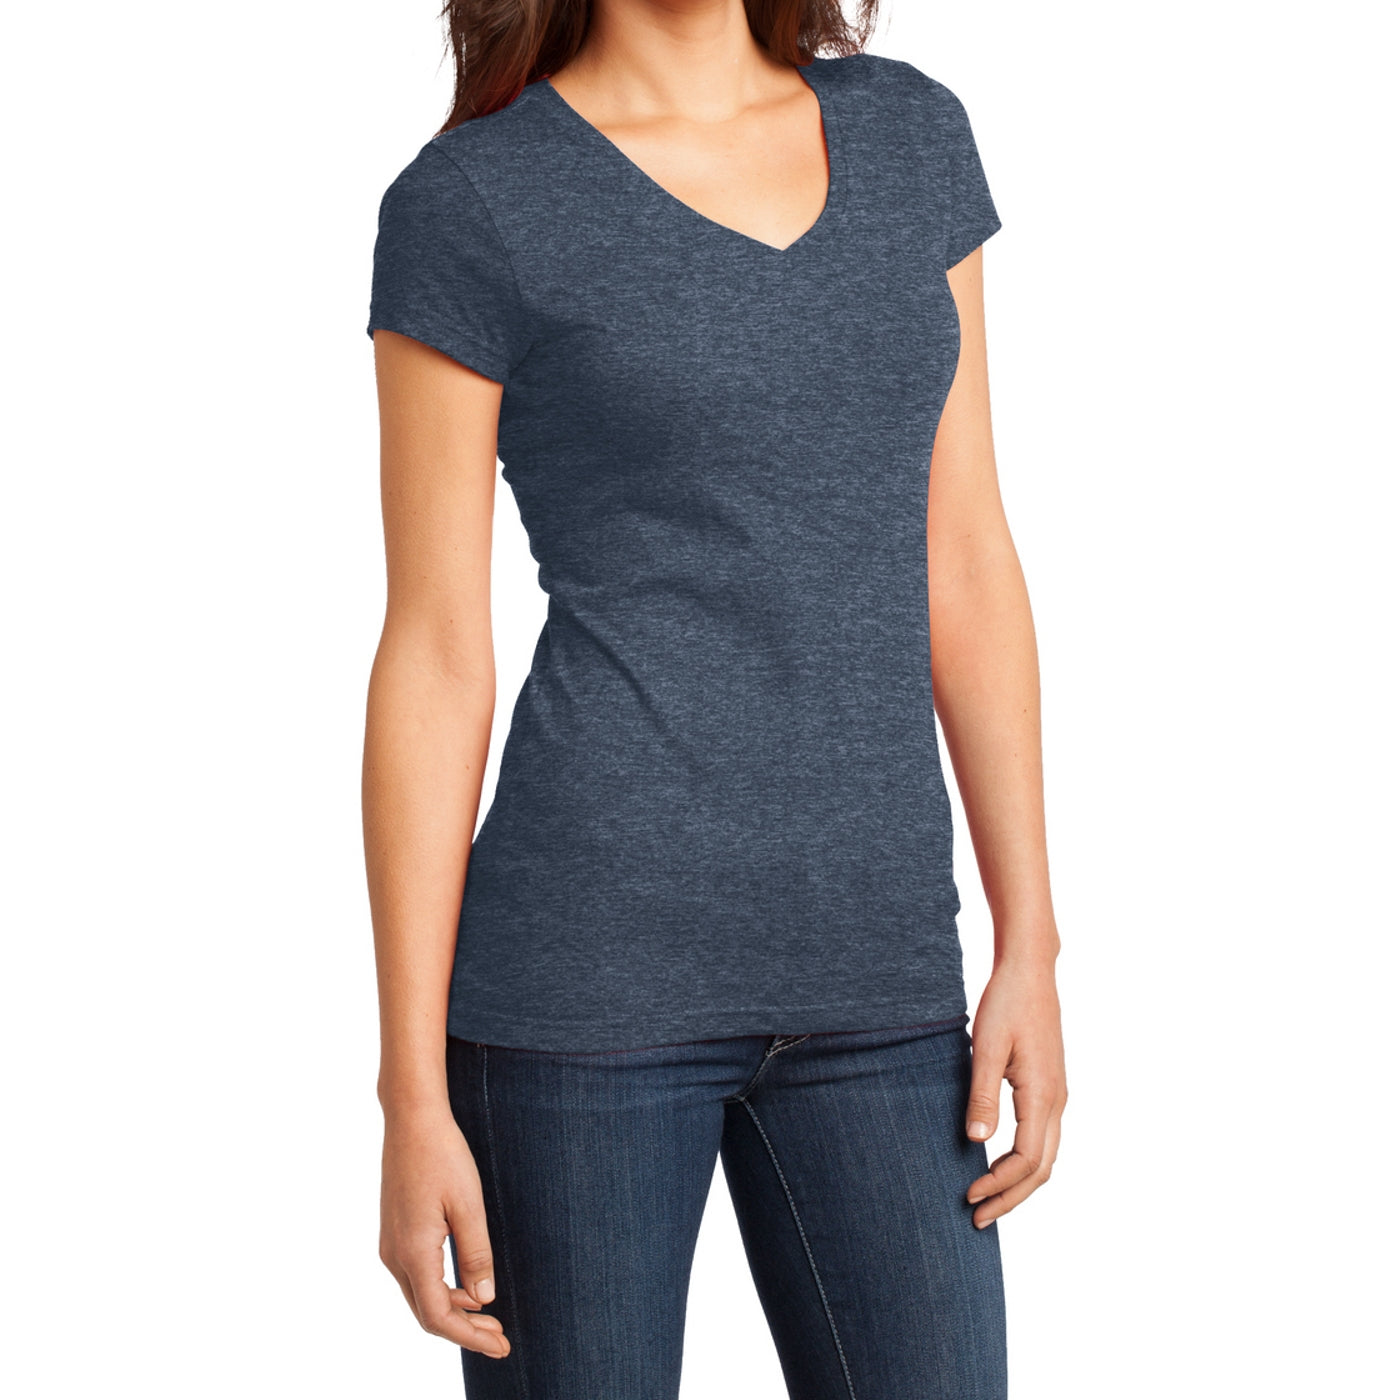 Women's Juniors Very Important Tee V-Neck - Heathered Navy